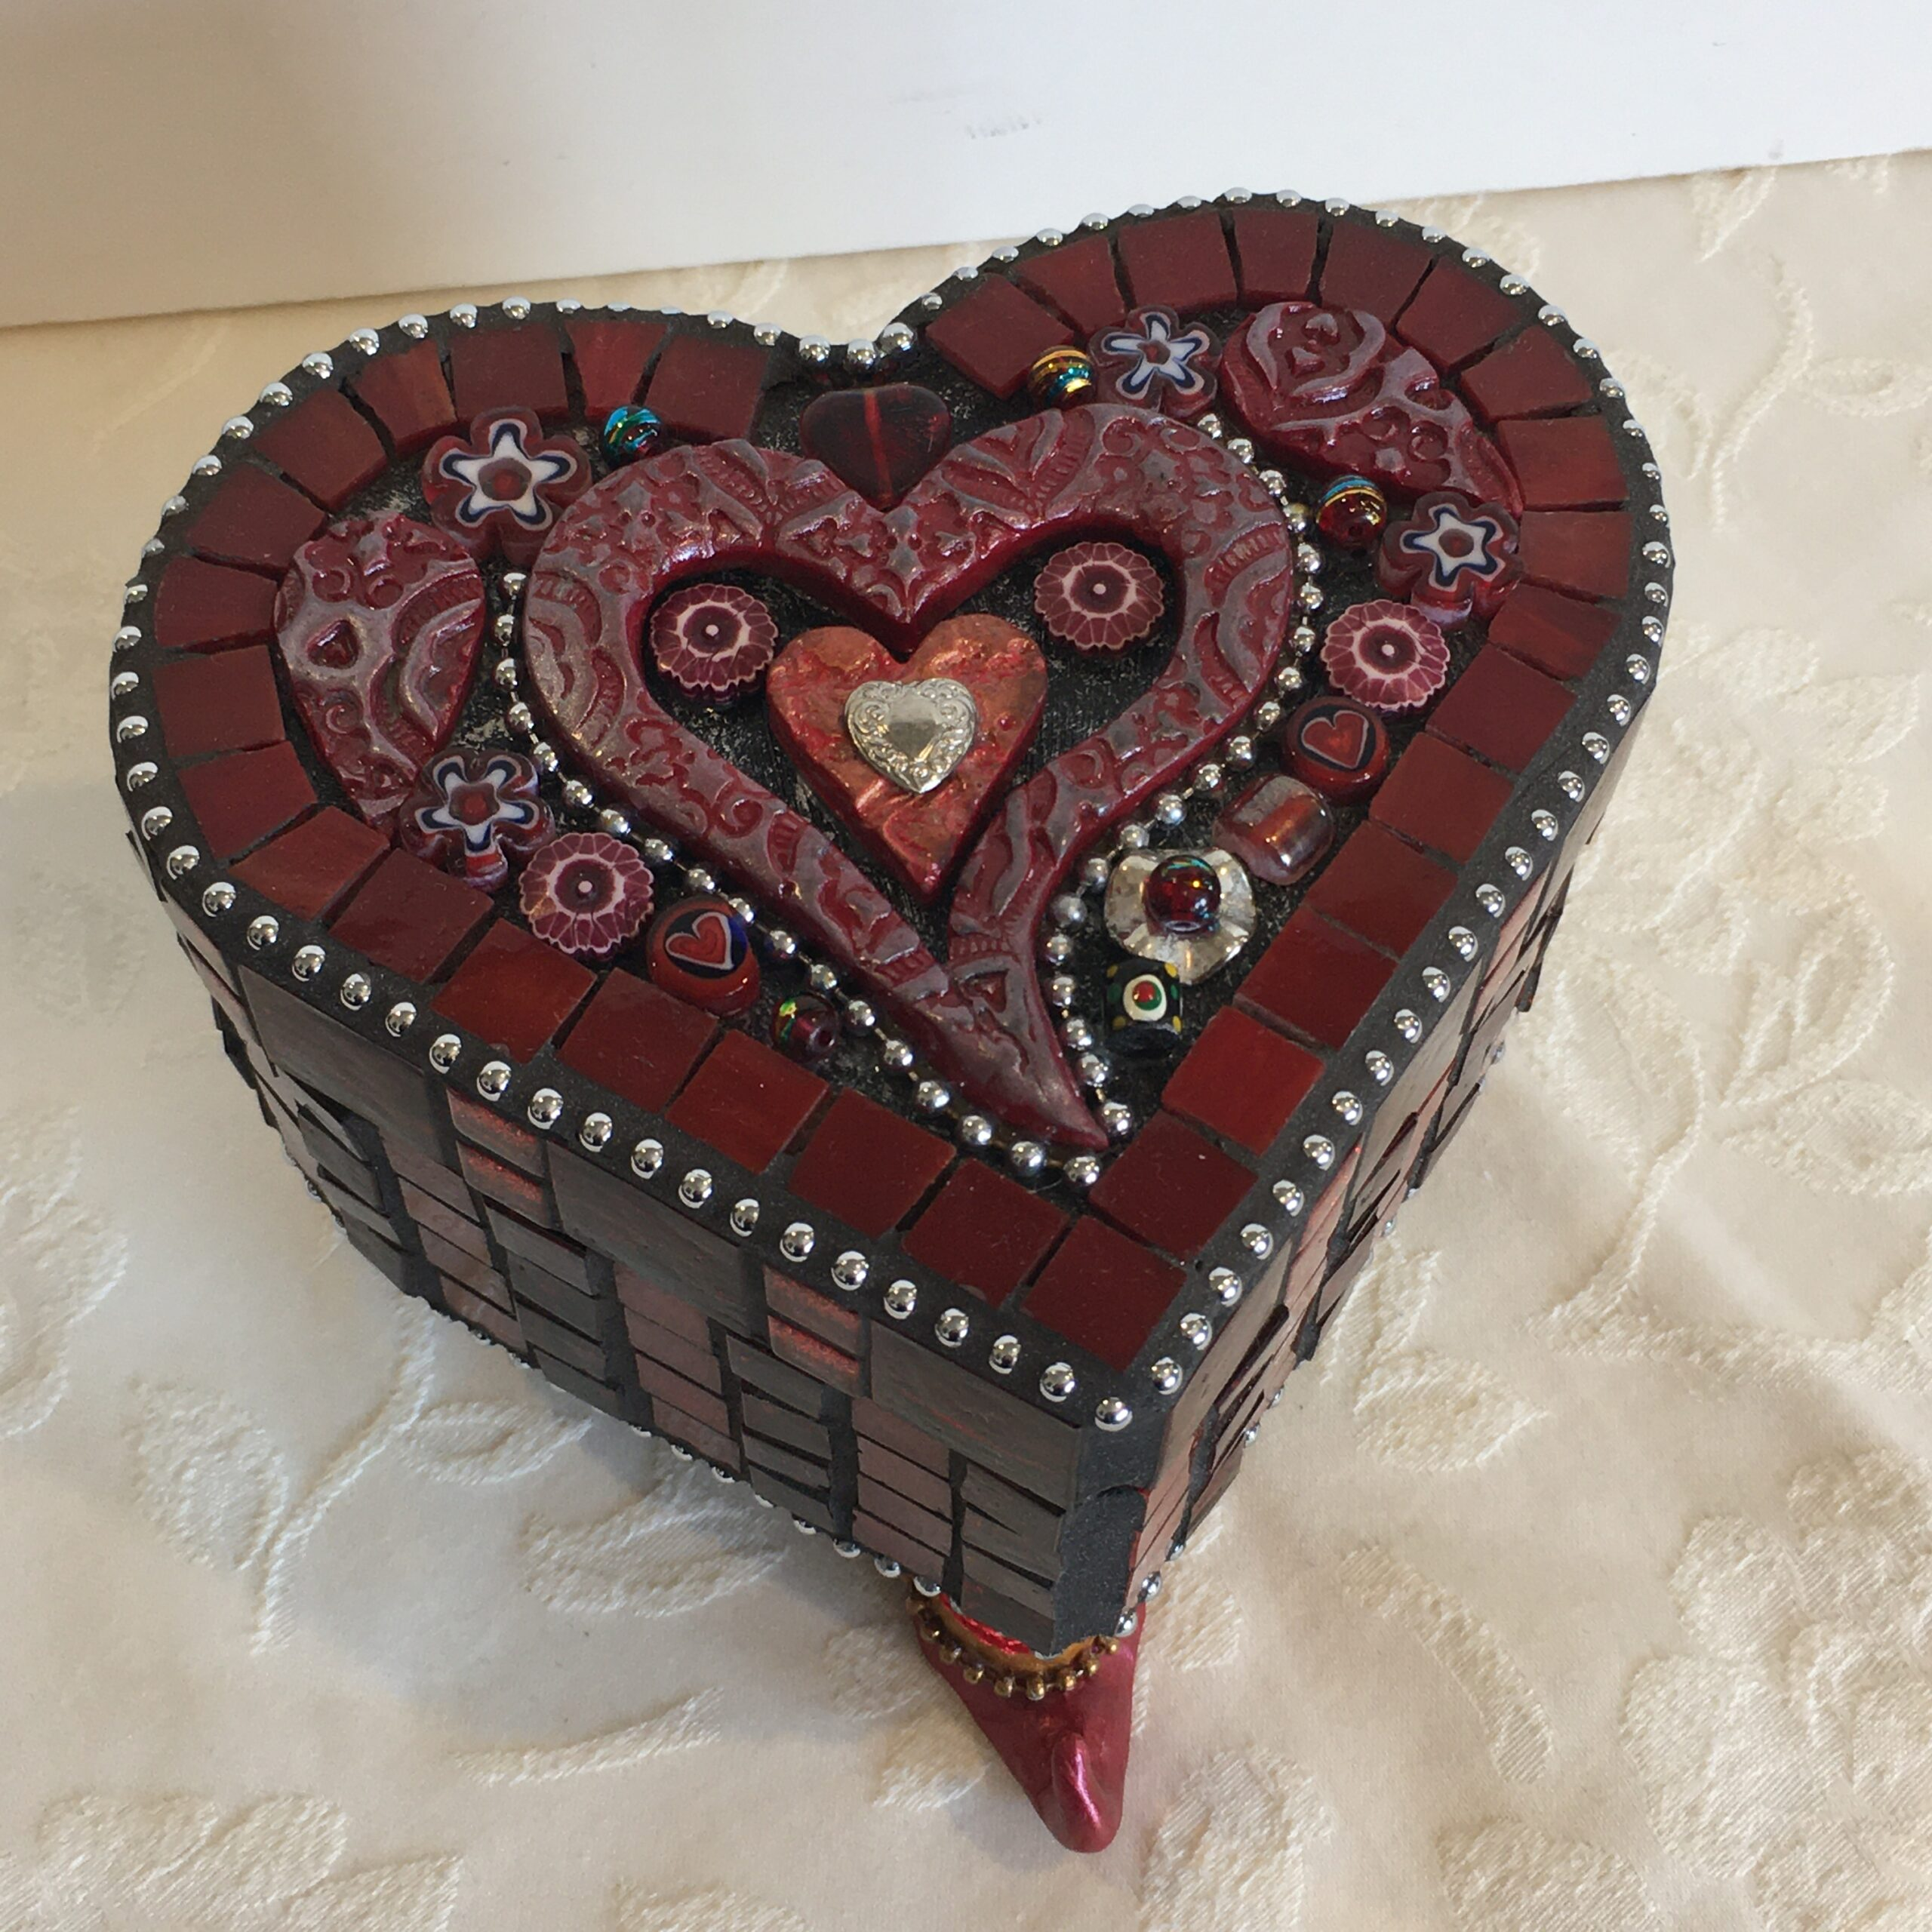 A heart-shaped box with Genie boot feet and decorated with polymer clay, glass mosaic and found objects.